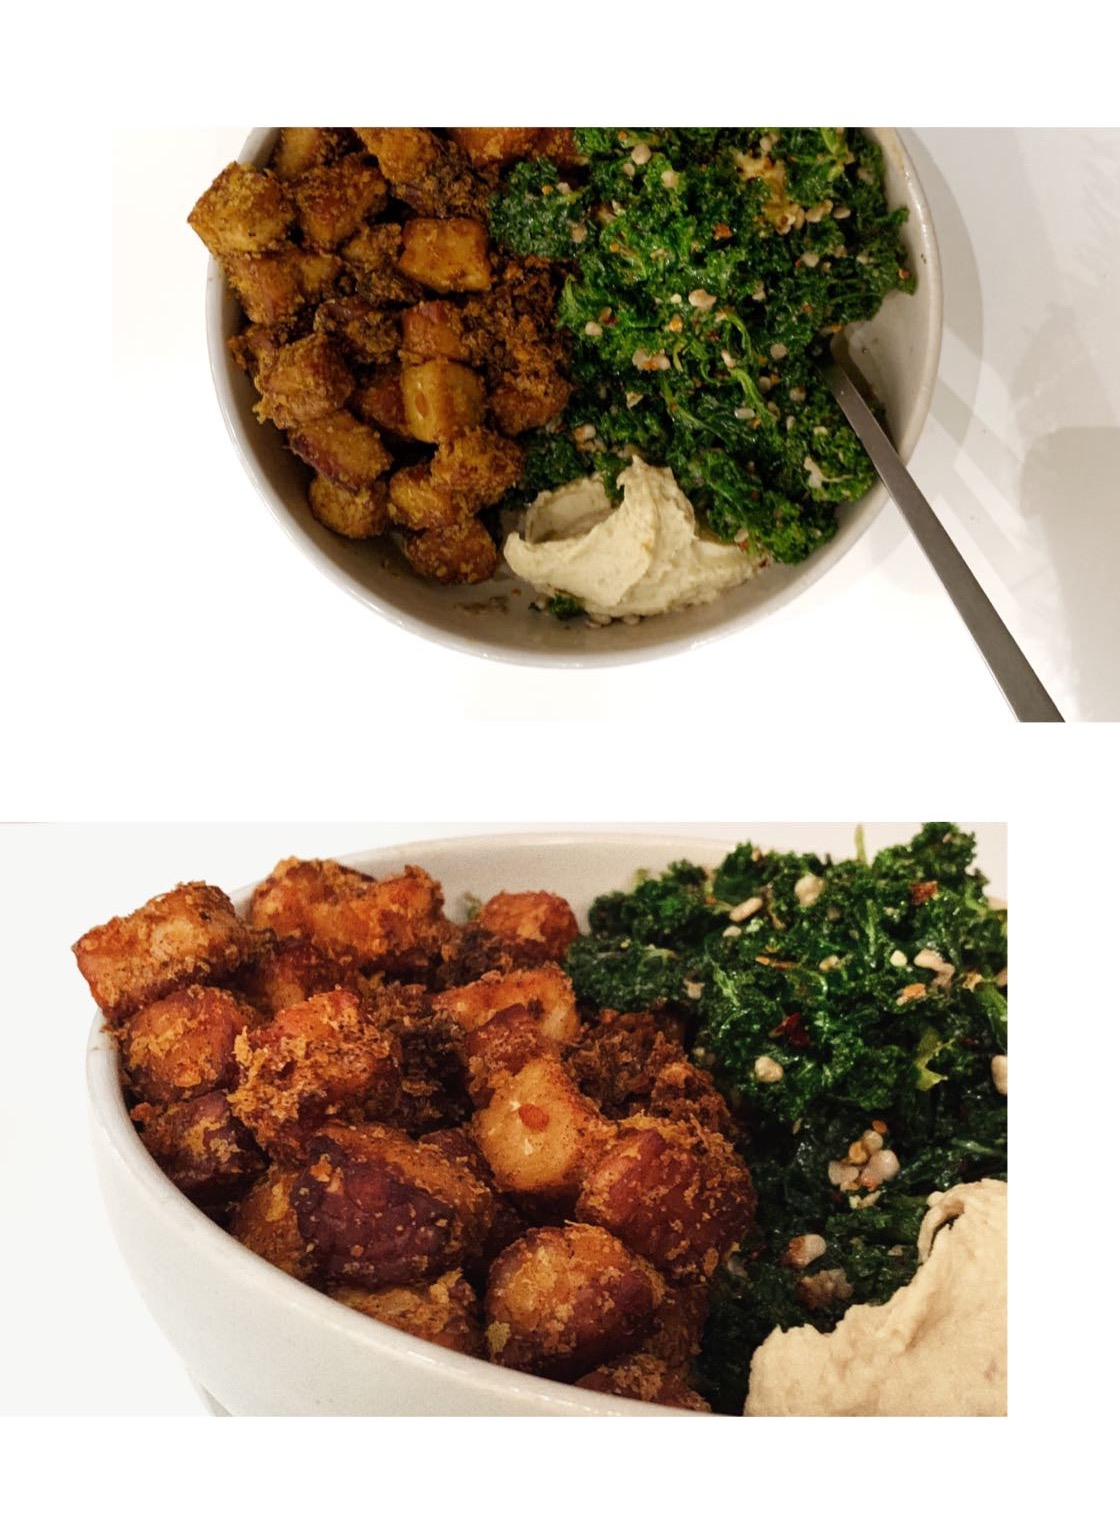 Kale Salad and %22Chicken%22 Nuggets 5.JPG